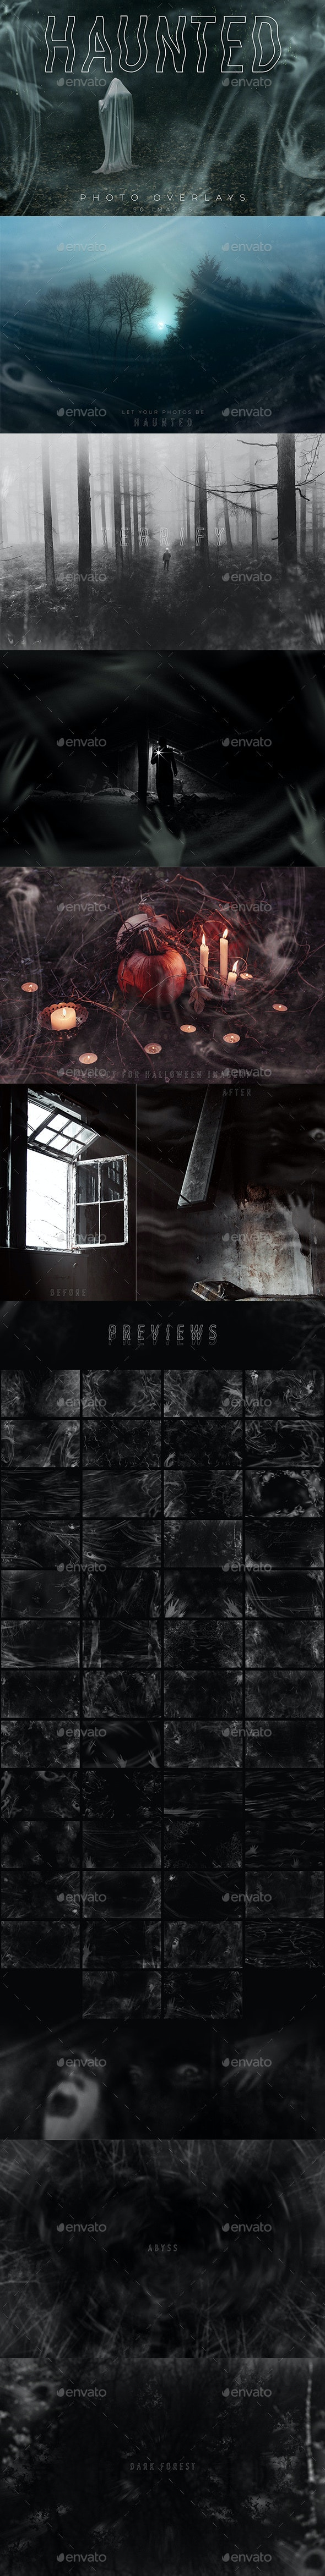 Haunted Photo Overlays - Seasonal Photo Templates